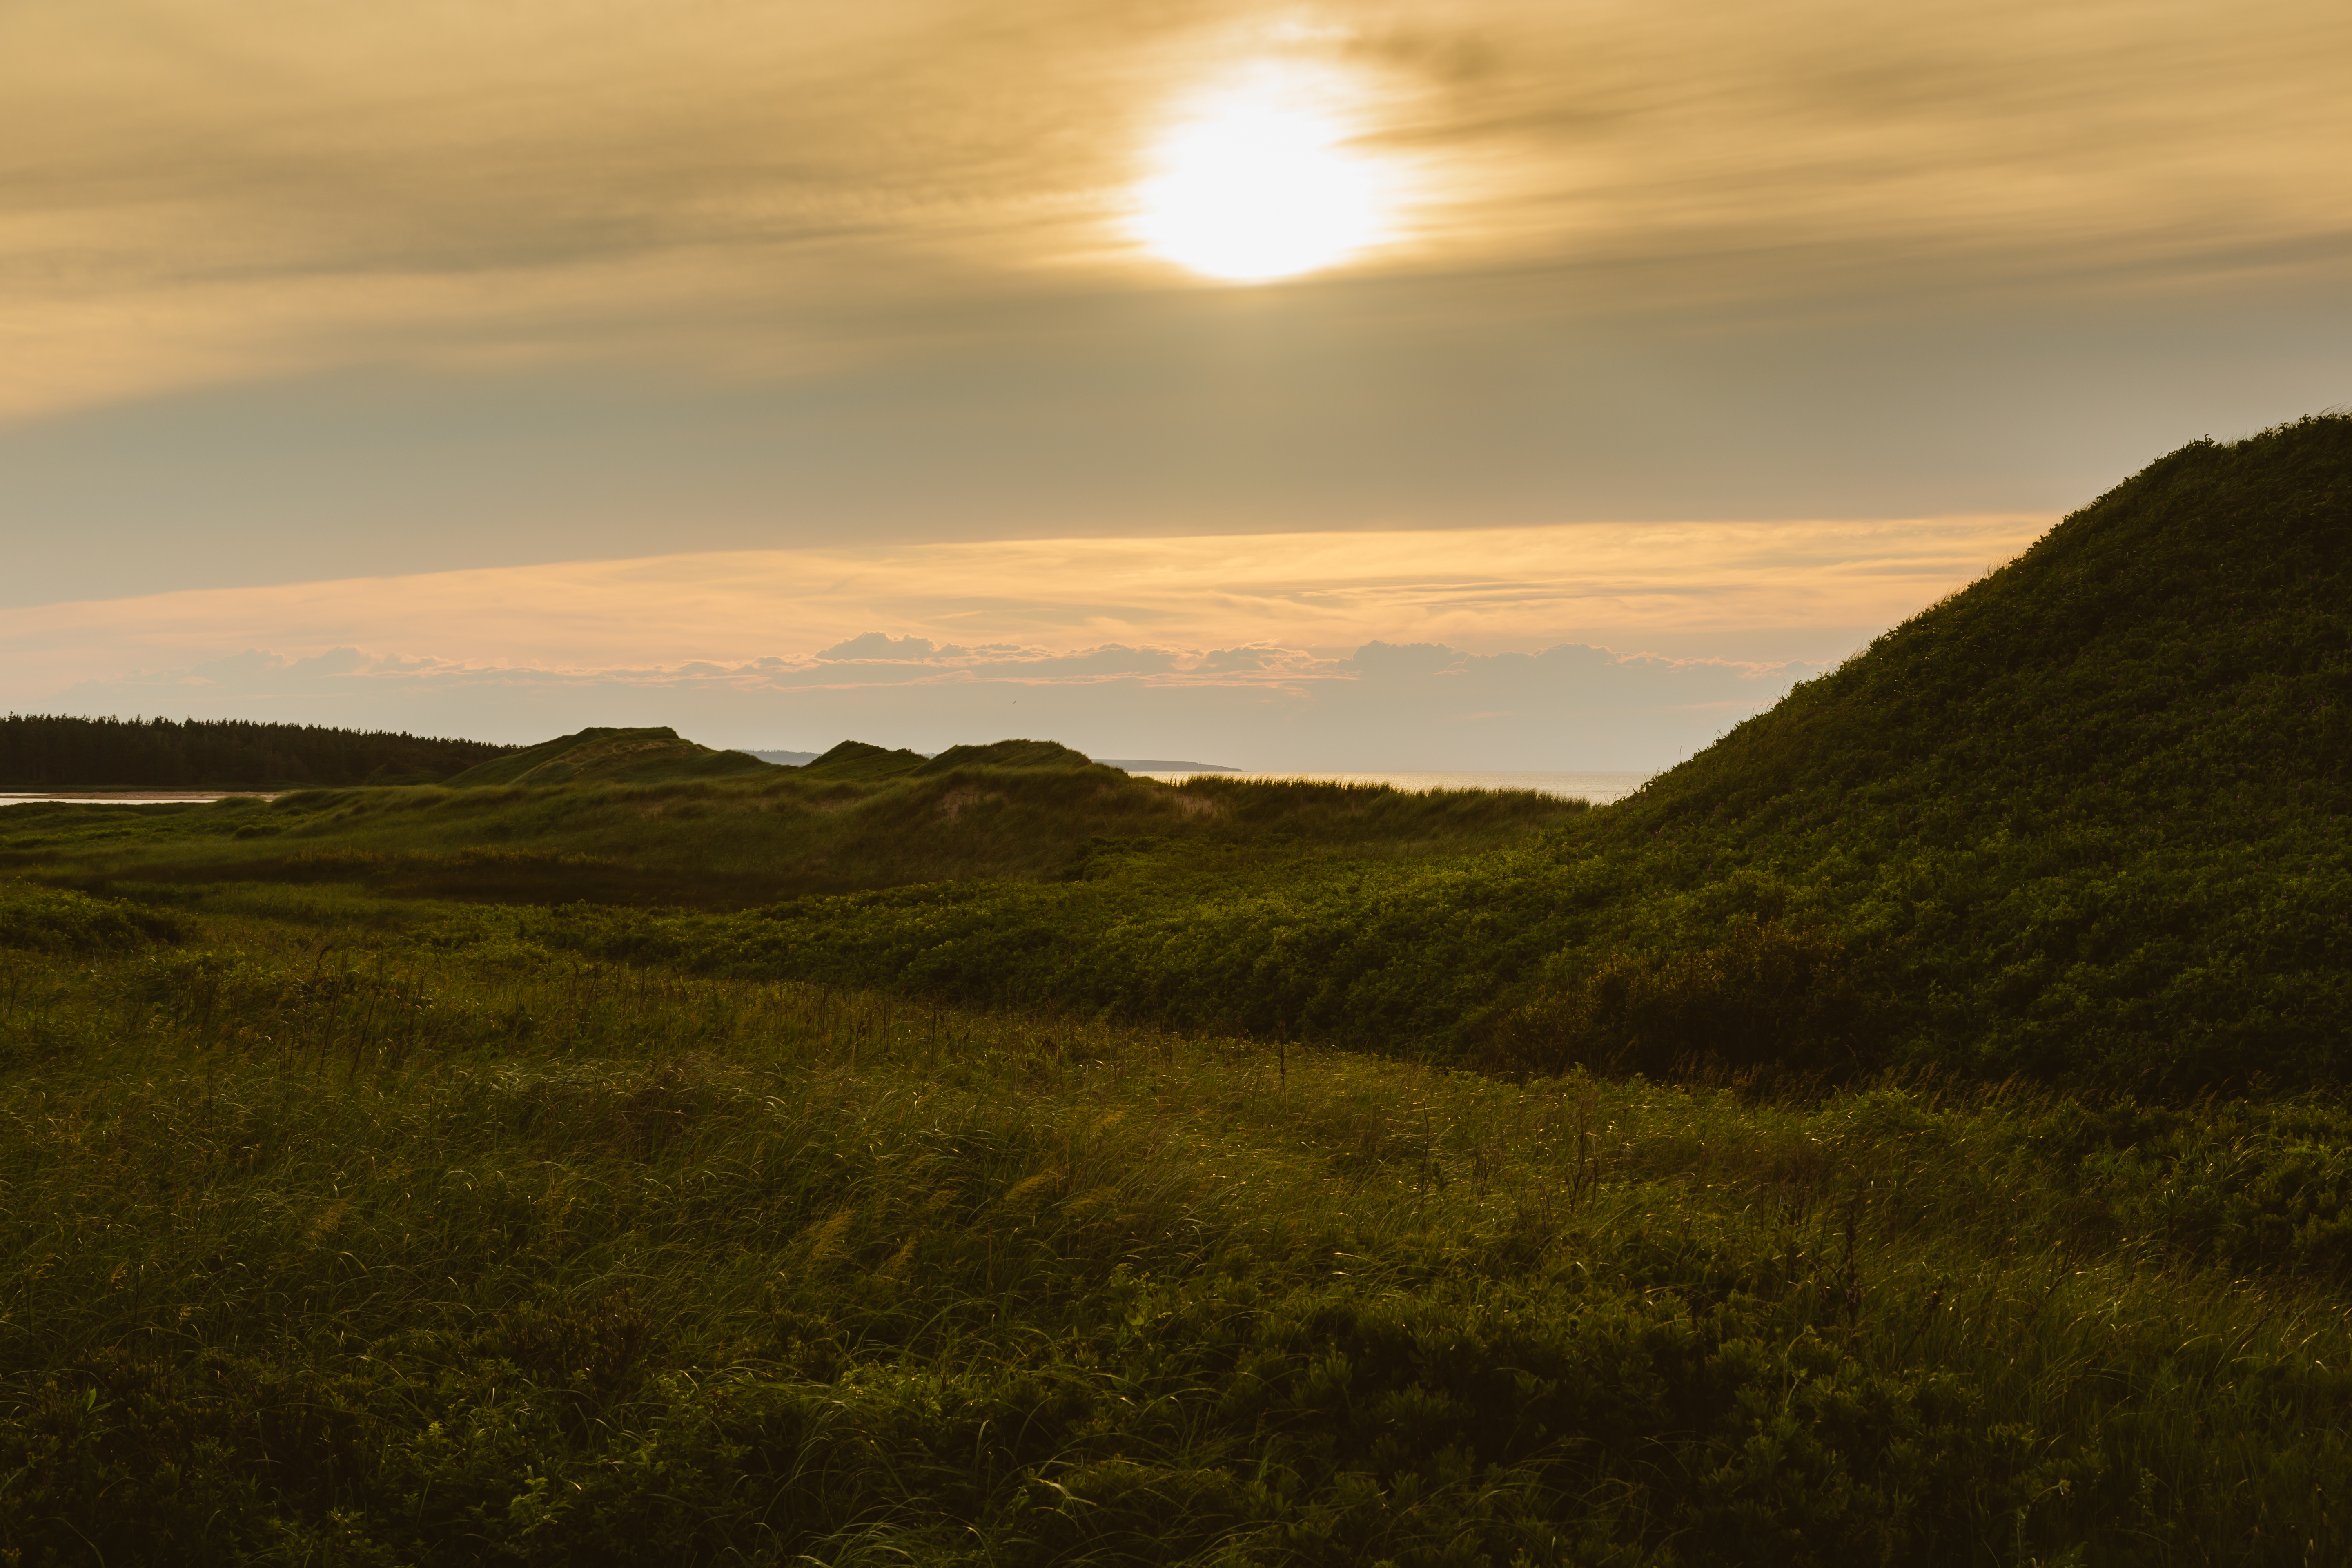 Prince Edward Island Stock Photo Cavendish Beach Dunes At Golden Hour Stock Photo